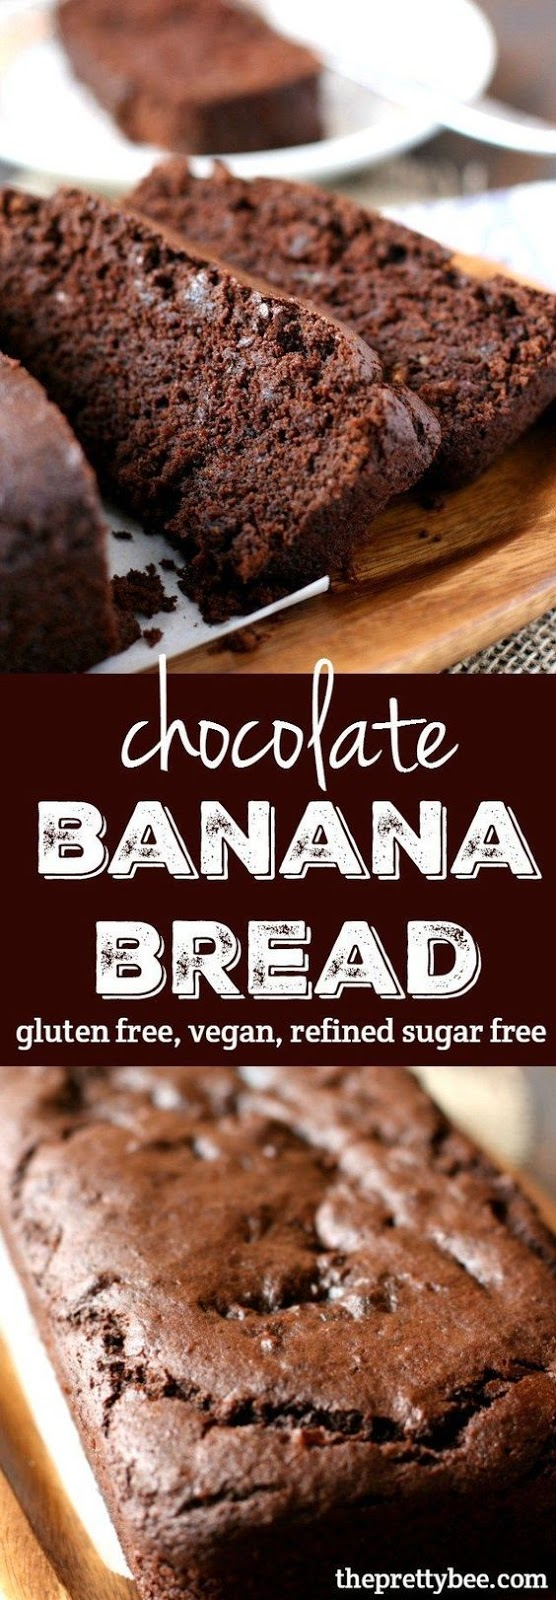 An easy recipe for chocolate banana bread that's gluten free, vegan, and refined sugar free.